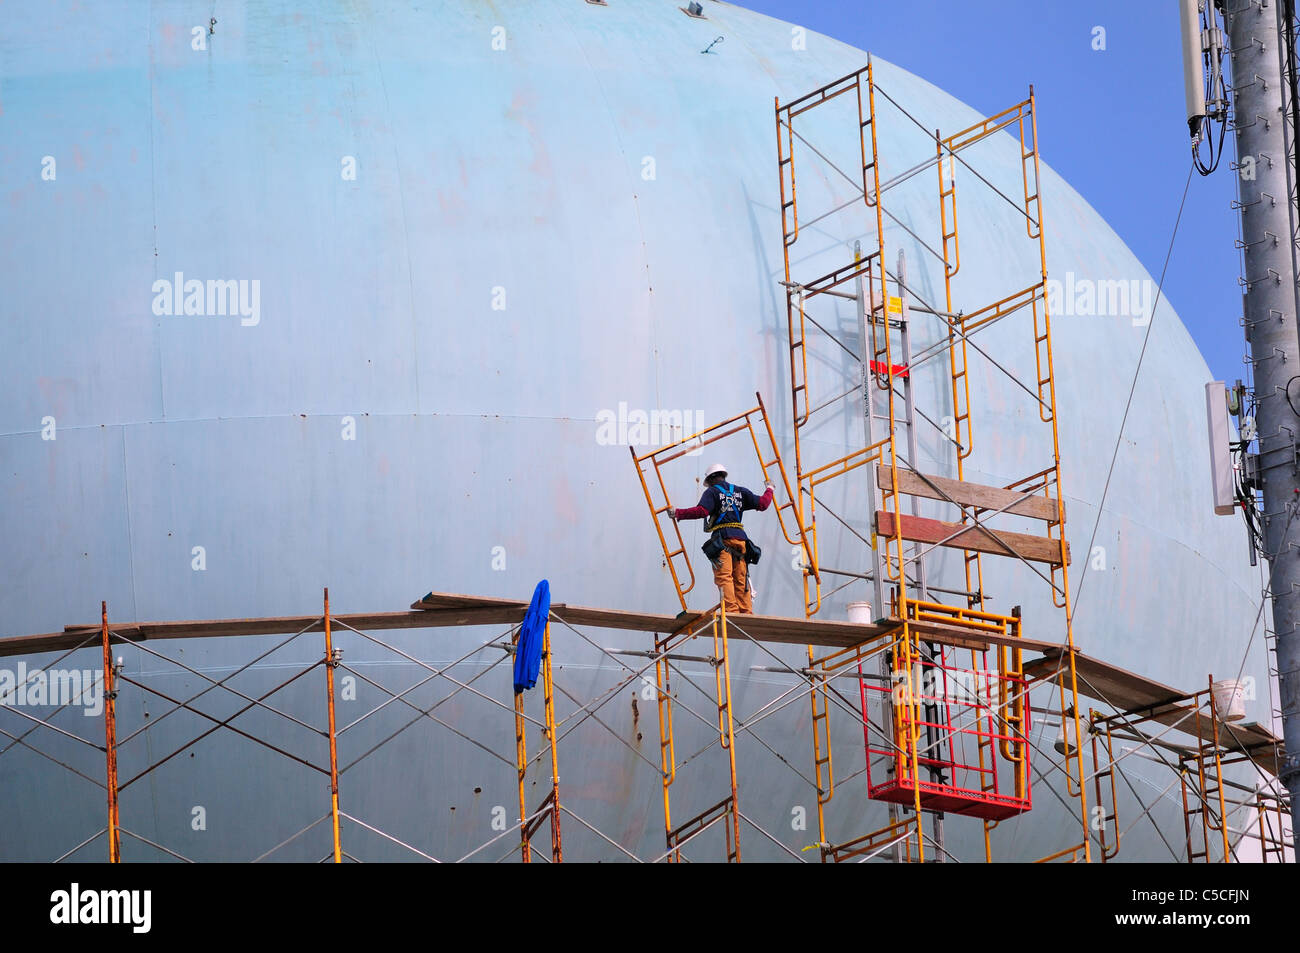 A workman carries a metal section of the scaffold while walking along a catwalk on a water tower in Brigantine Beach - Stock Image